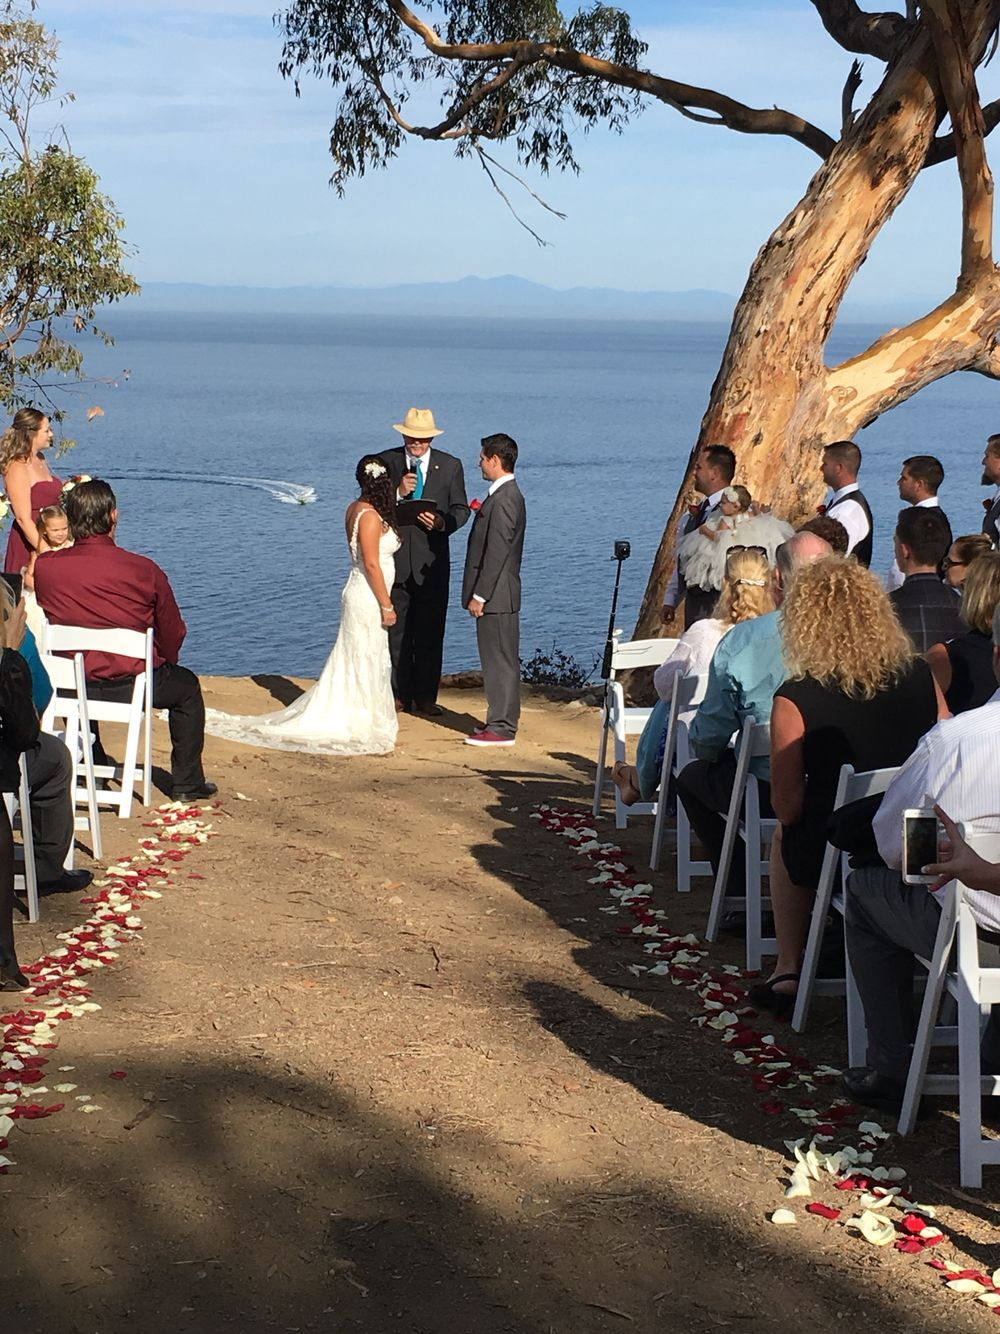 A very special wedding ceremony on beautiful Catalina